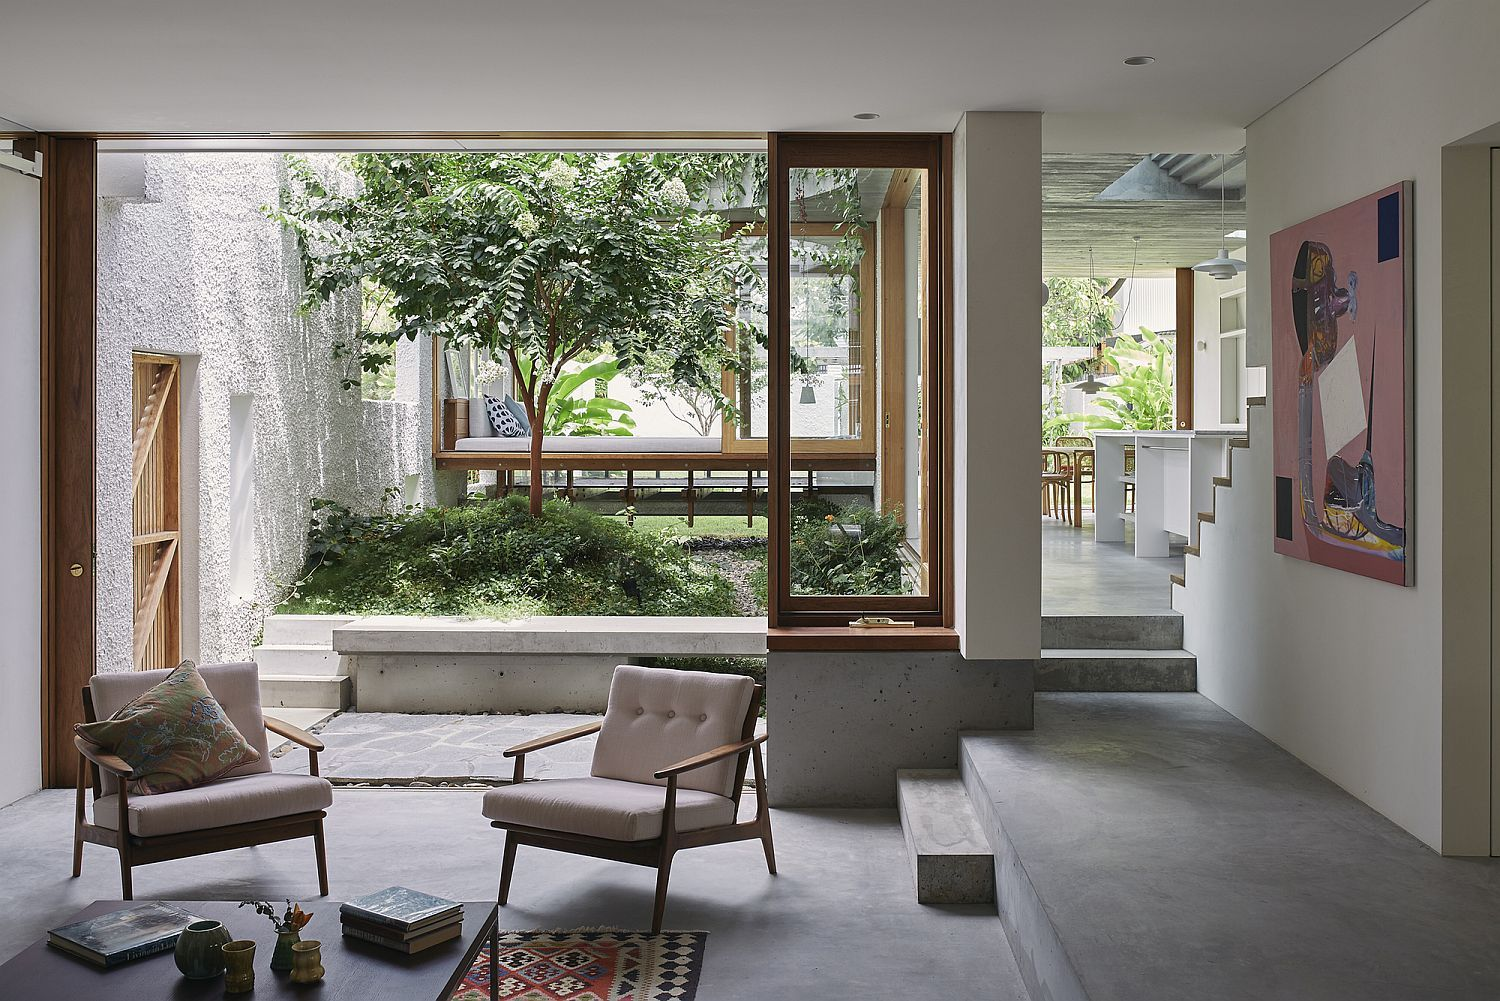 Gibbon Street Integrating Open Design and Greenery with